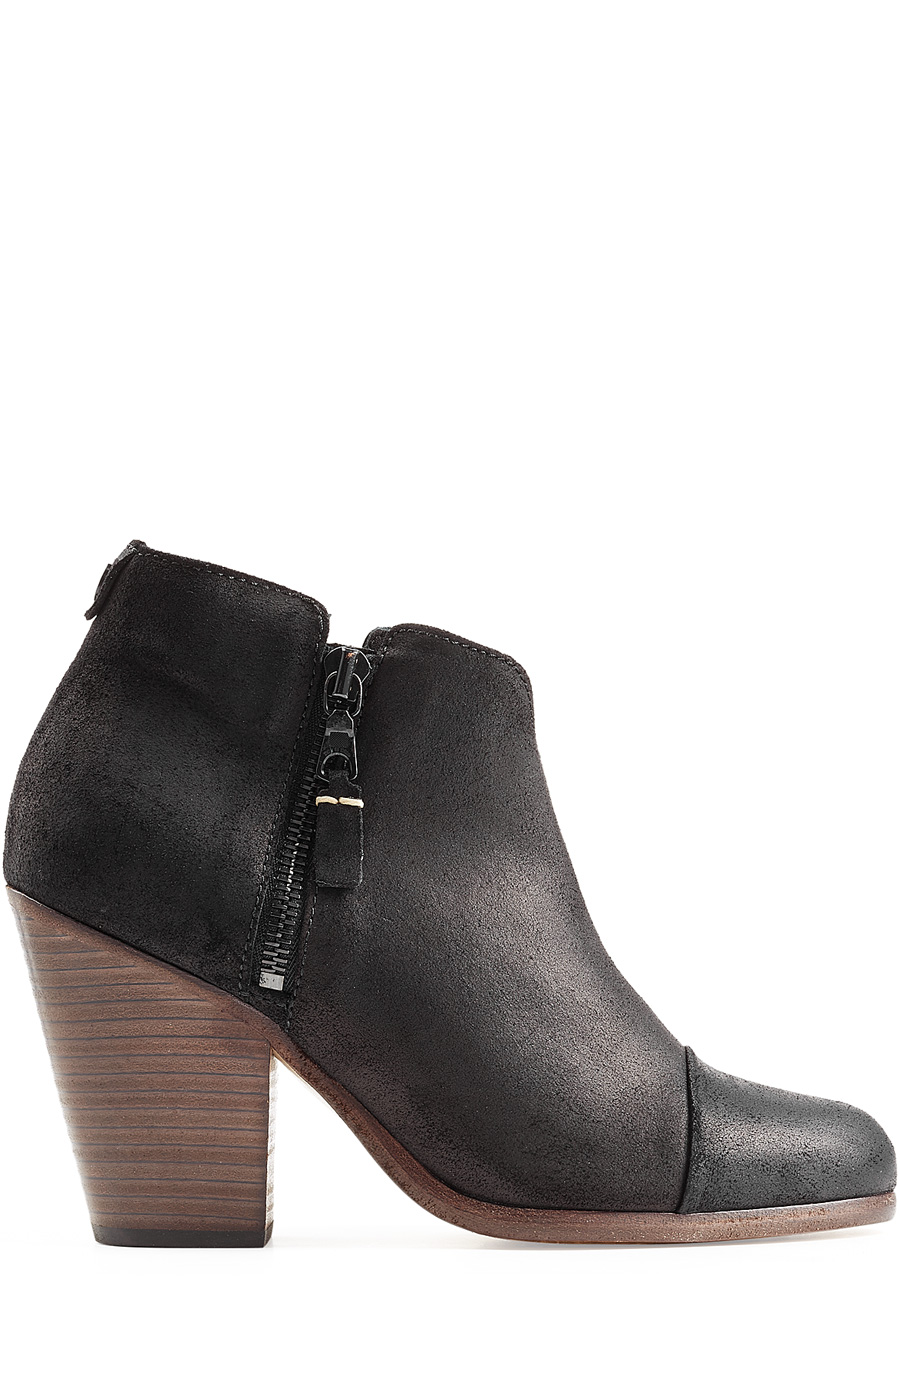 Rag And Bone Black Suede Classic Margot Boots, Black Waxed Suede